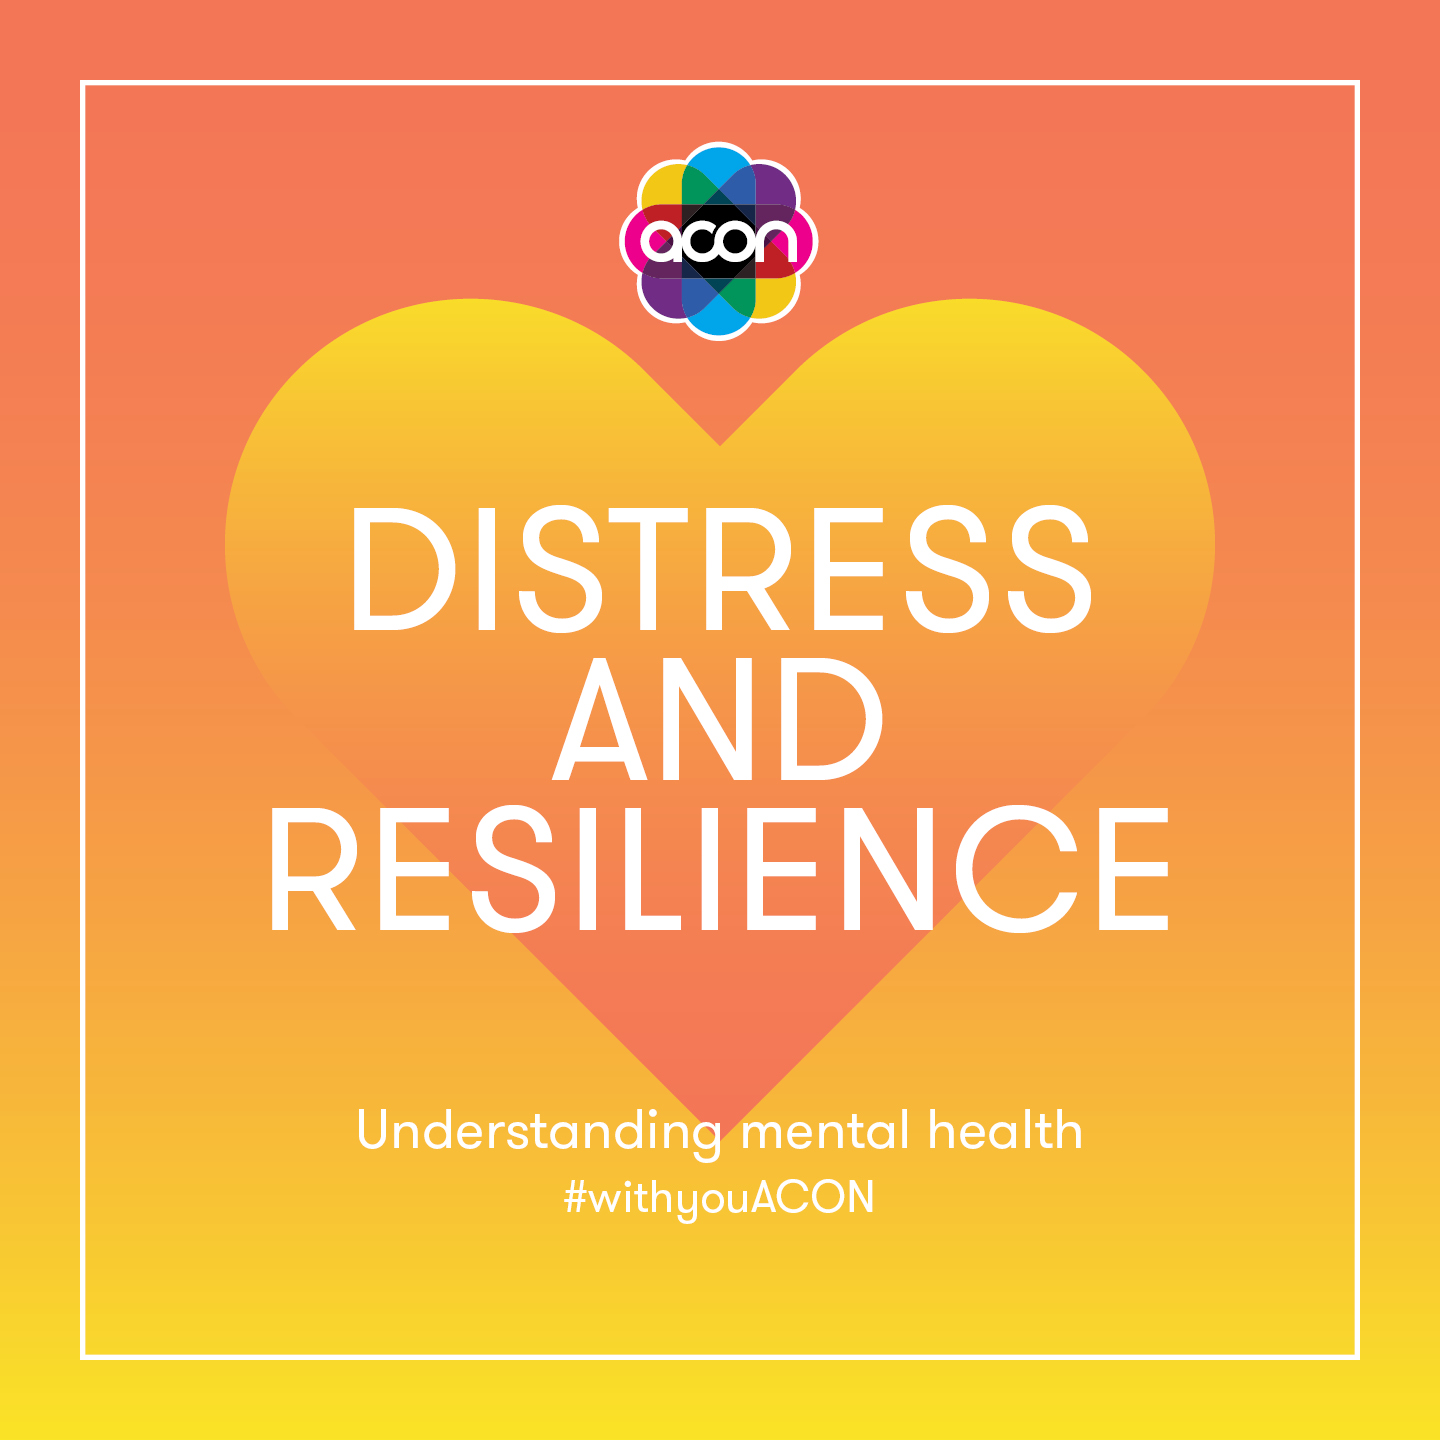 distress and resilience